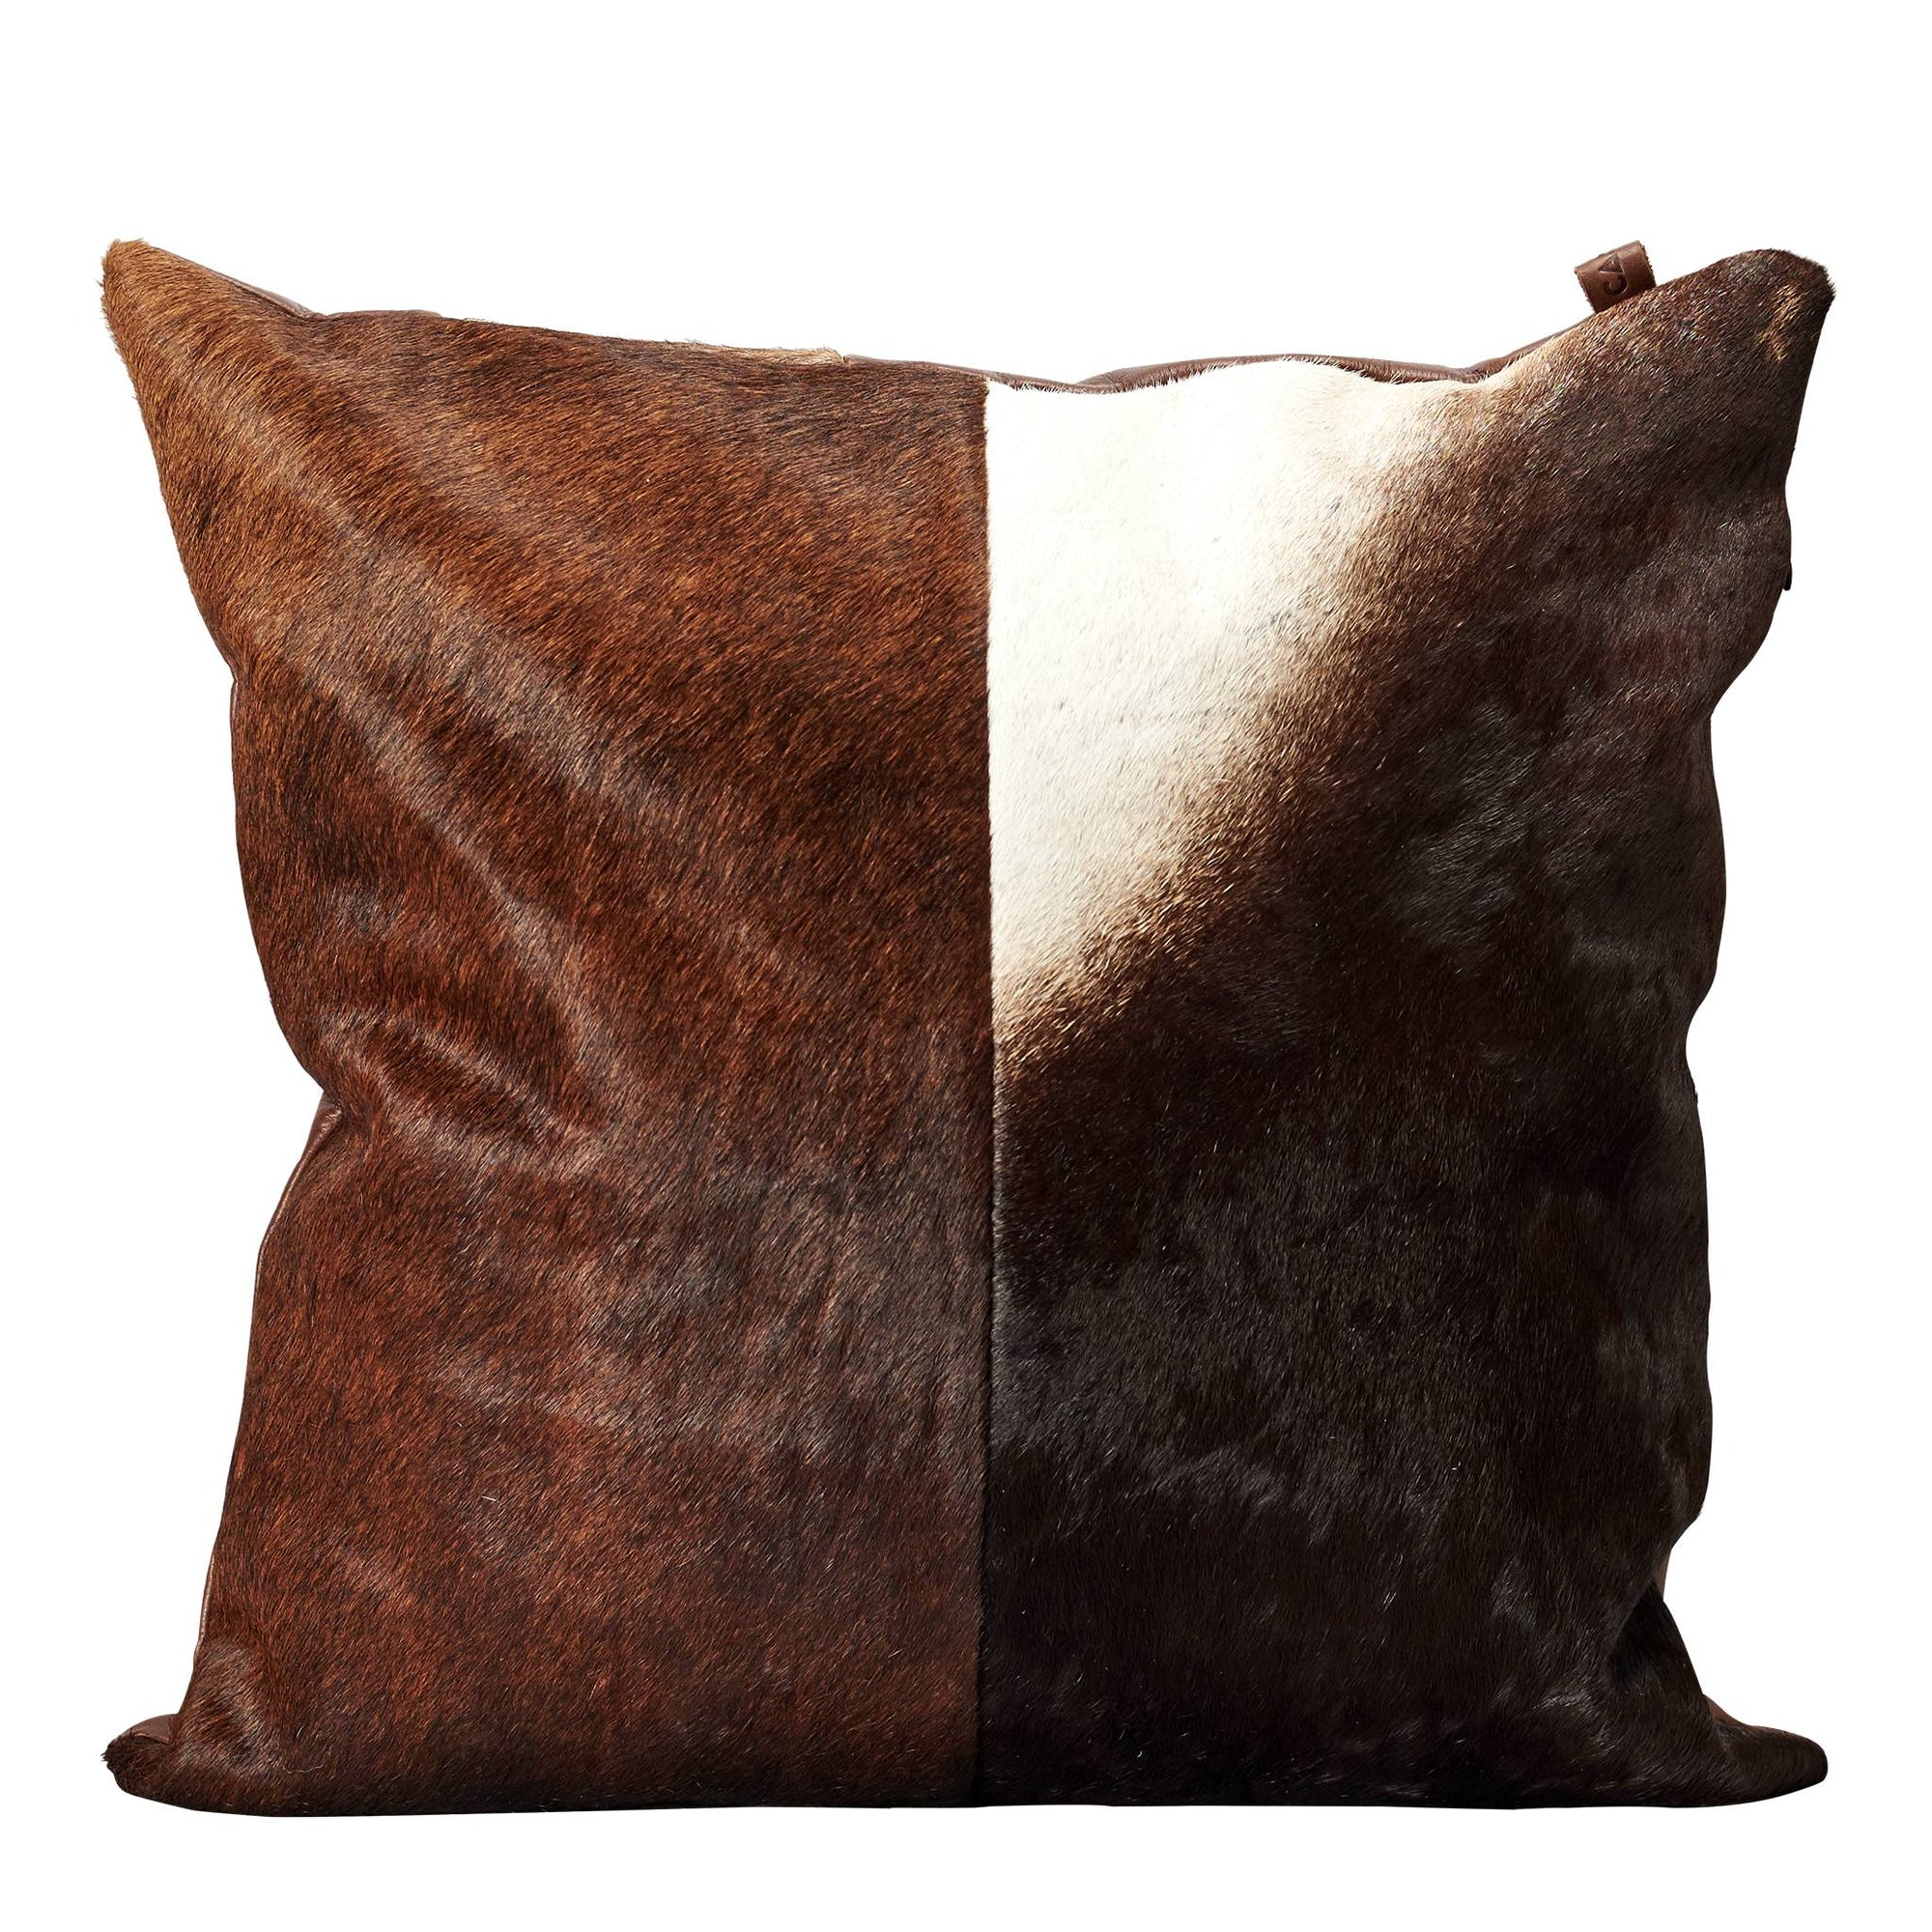 Cowhide Dual Cushions By Capra Leather Capra Leather